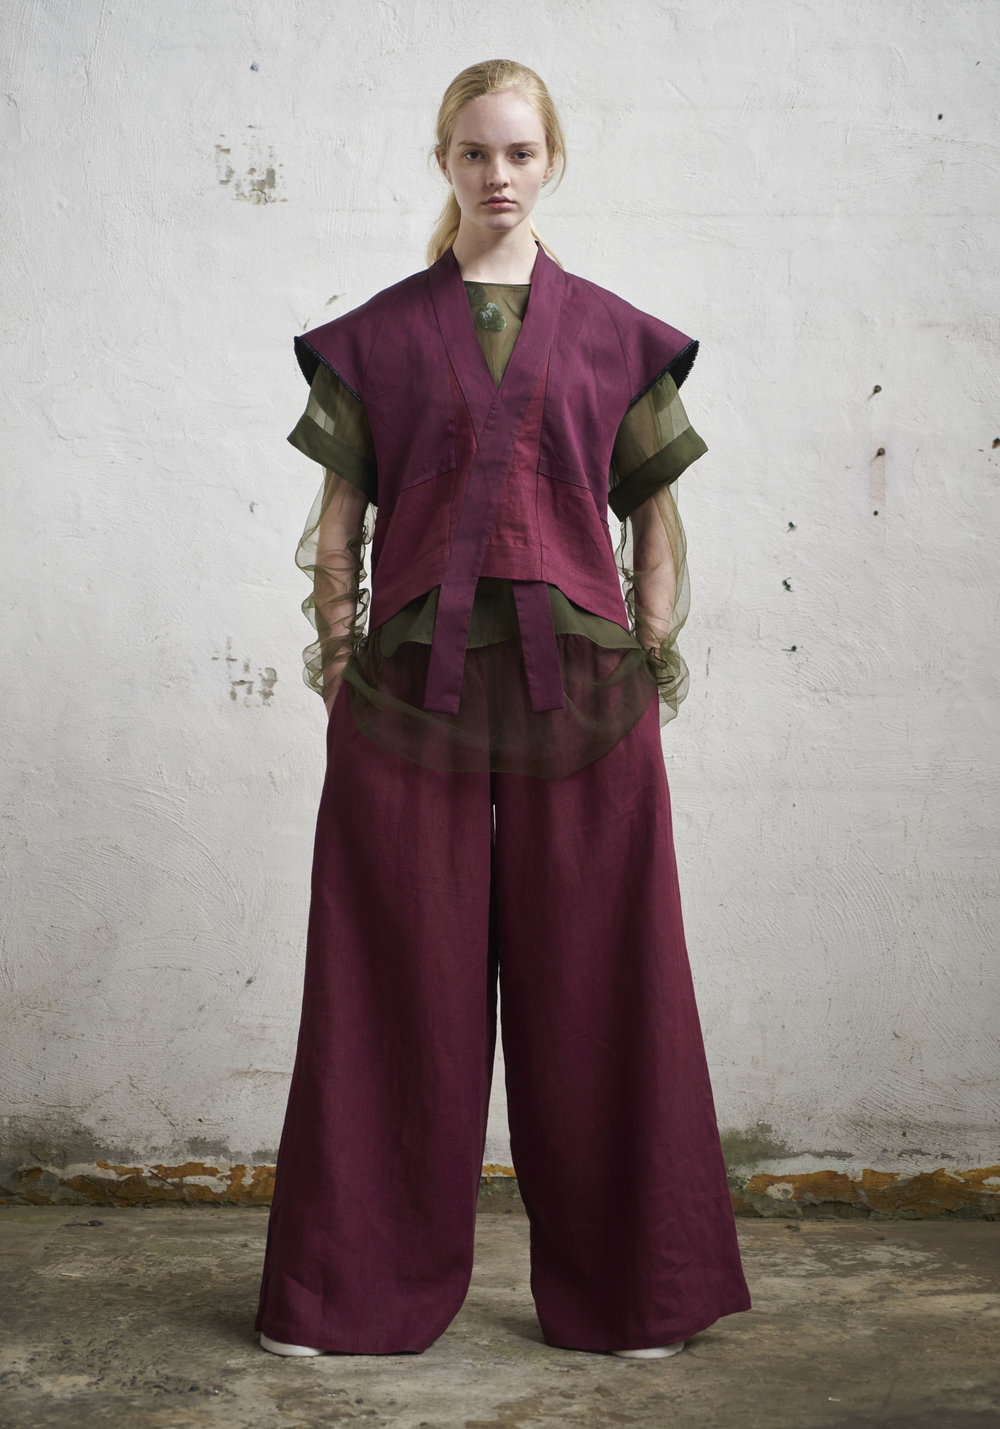 L O O K 1 3  294/S172173 Kimono Vest  912/S176133 Gathered Wide Pants  151/S173446 Embellished Long Sleeve Top  105/S171602R Boxy Top W/Sleeves